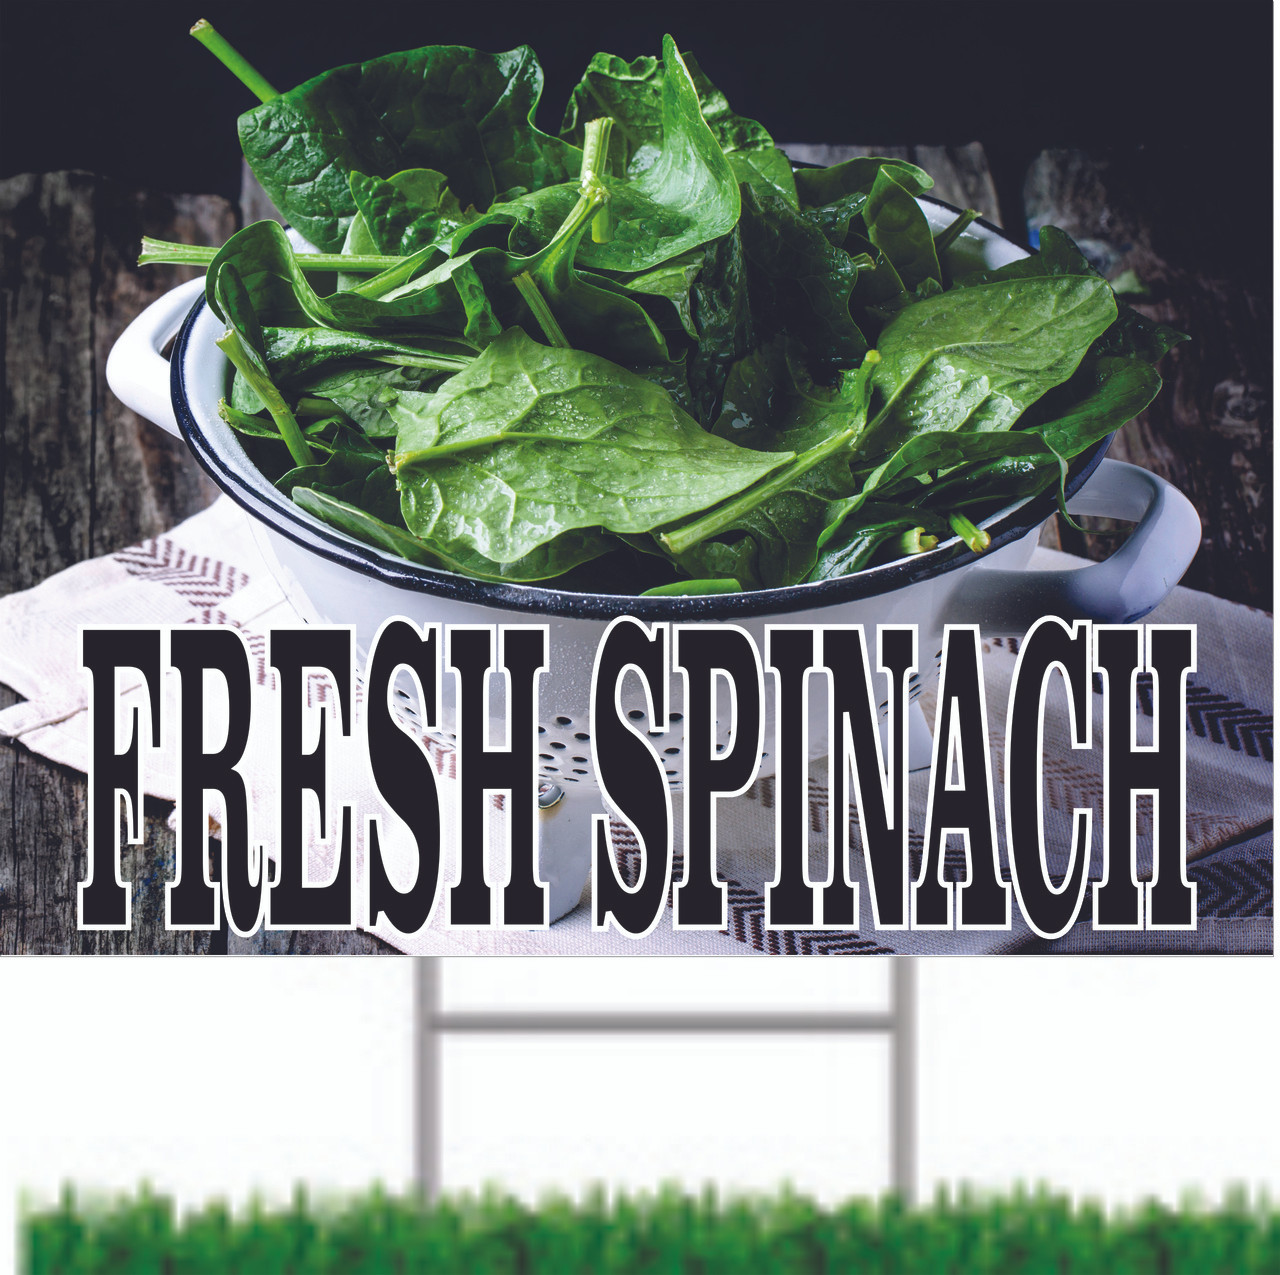 Fresh Spinach Road Sign Let Customers Know it in Season.